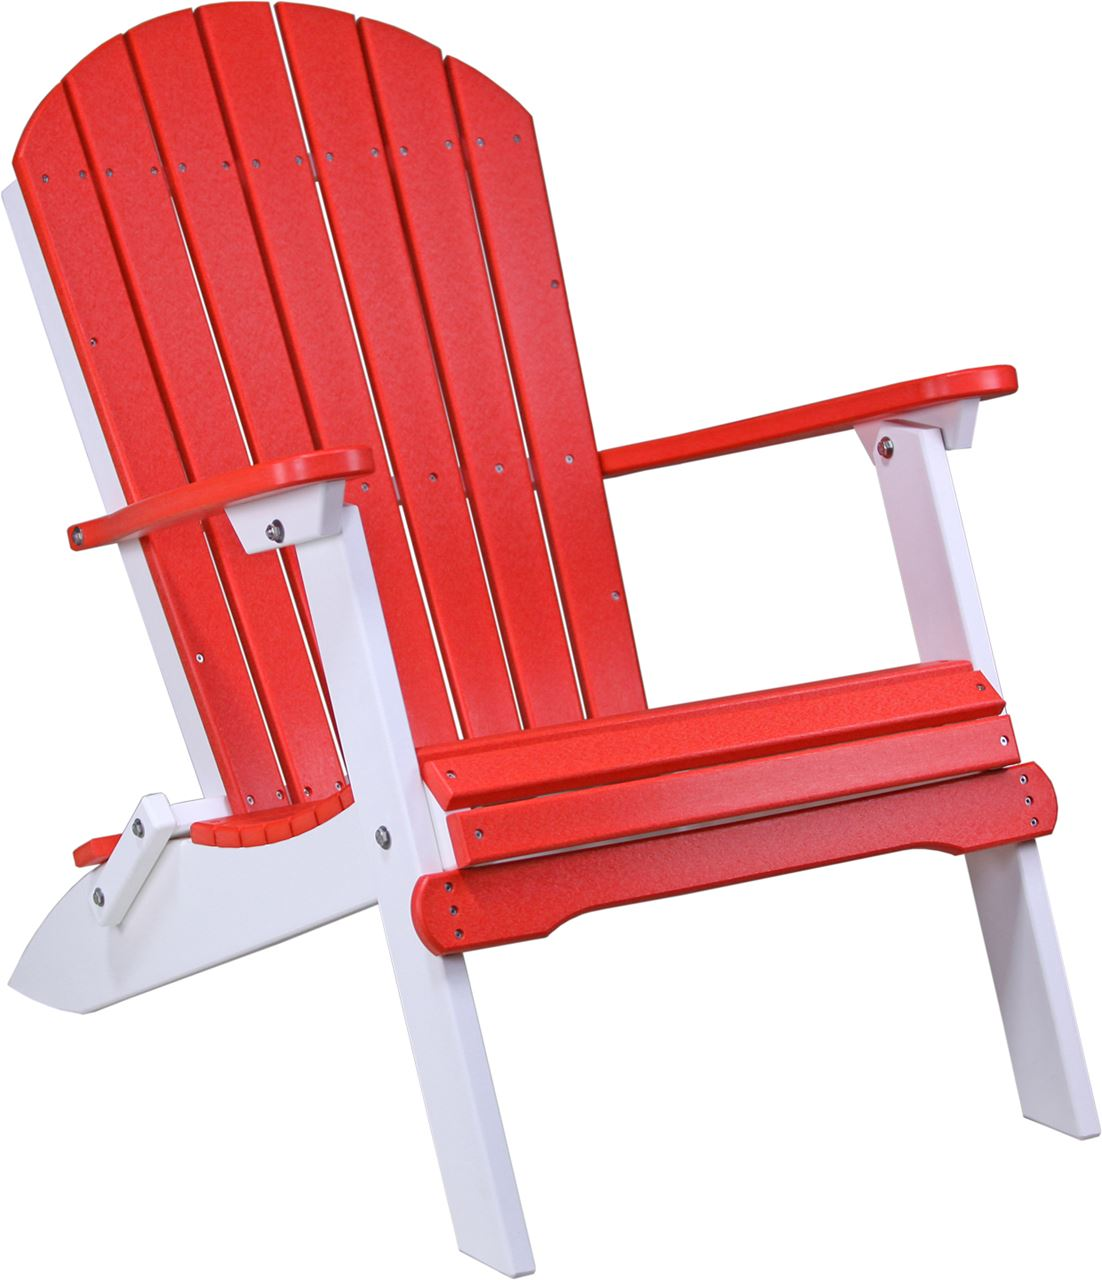 amish folding adirondack chair plans black dining chairs set of 6 four seasons furnishings made furniture luxcraft